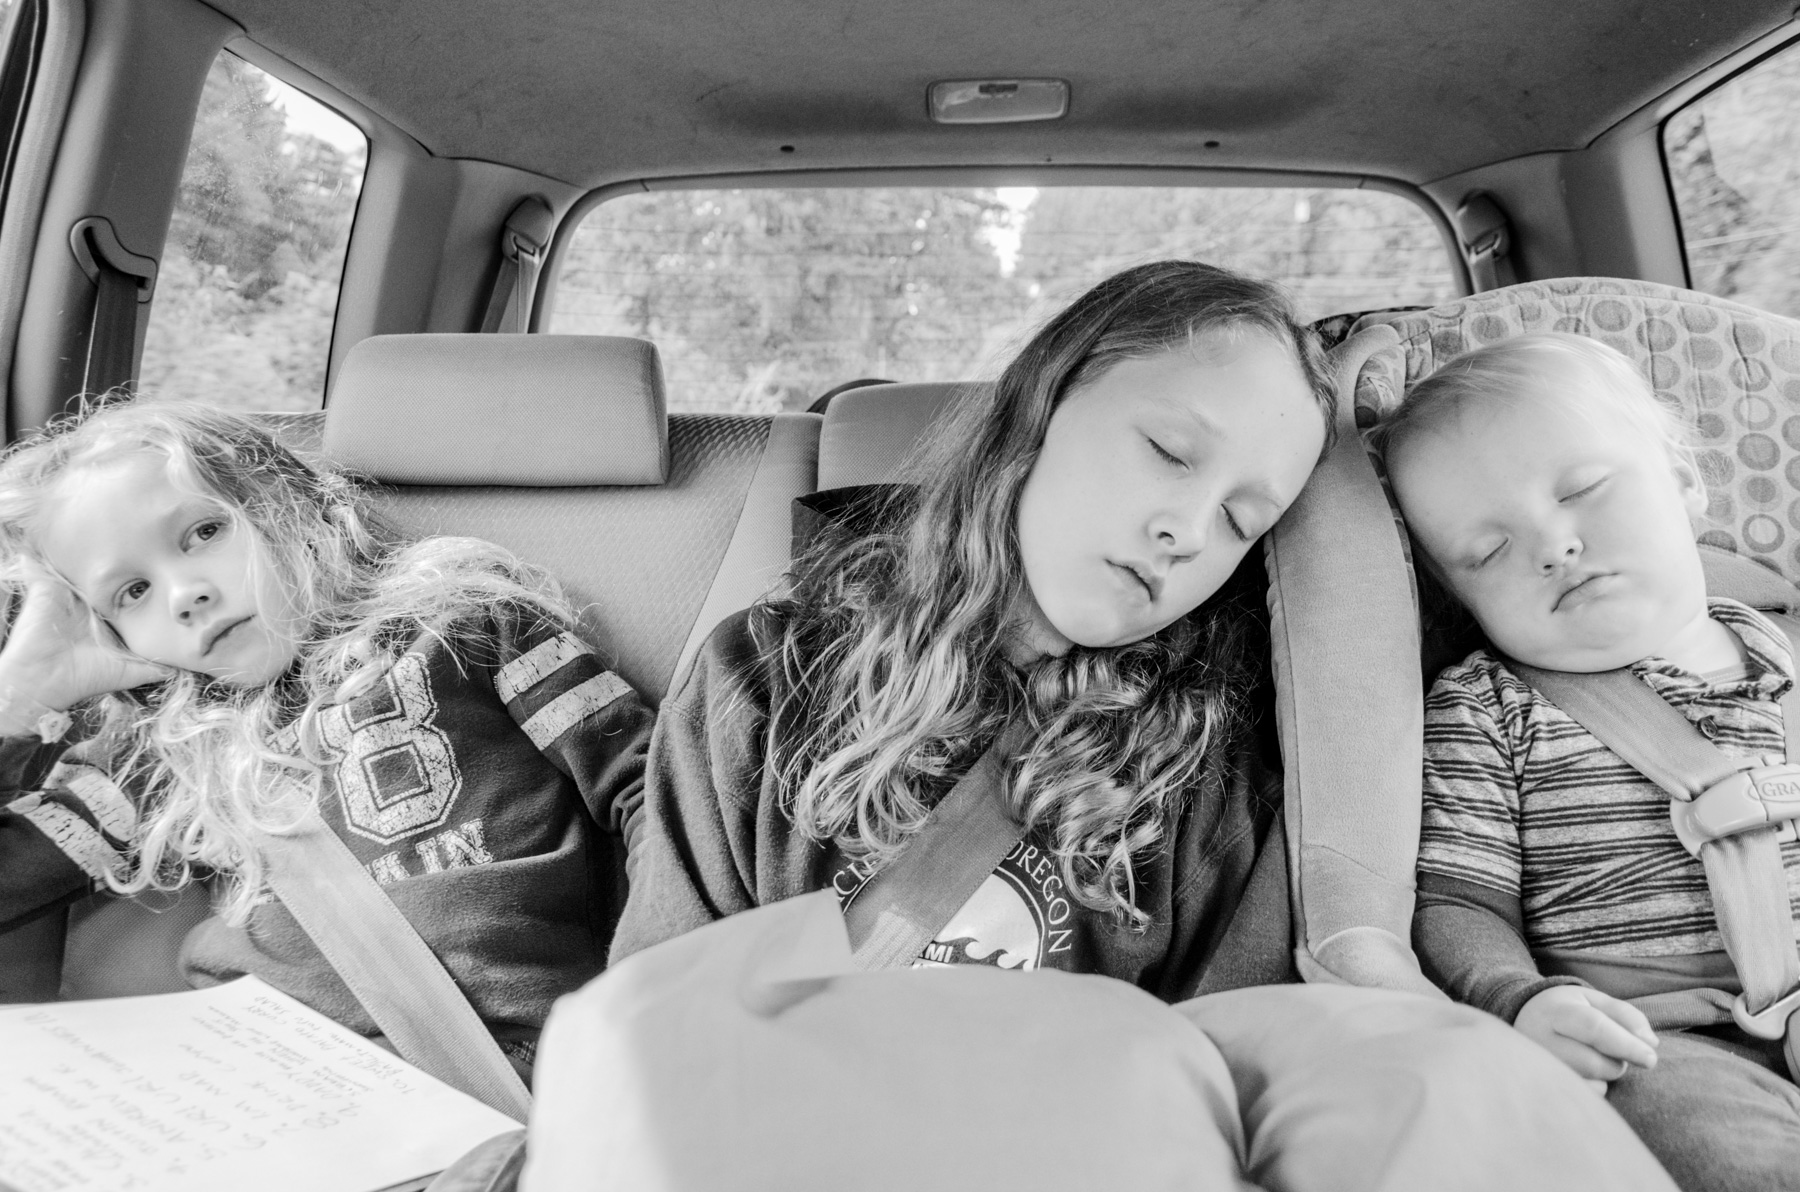 Three children riding in back seat after hiking adventure.